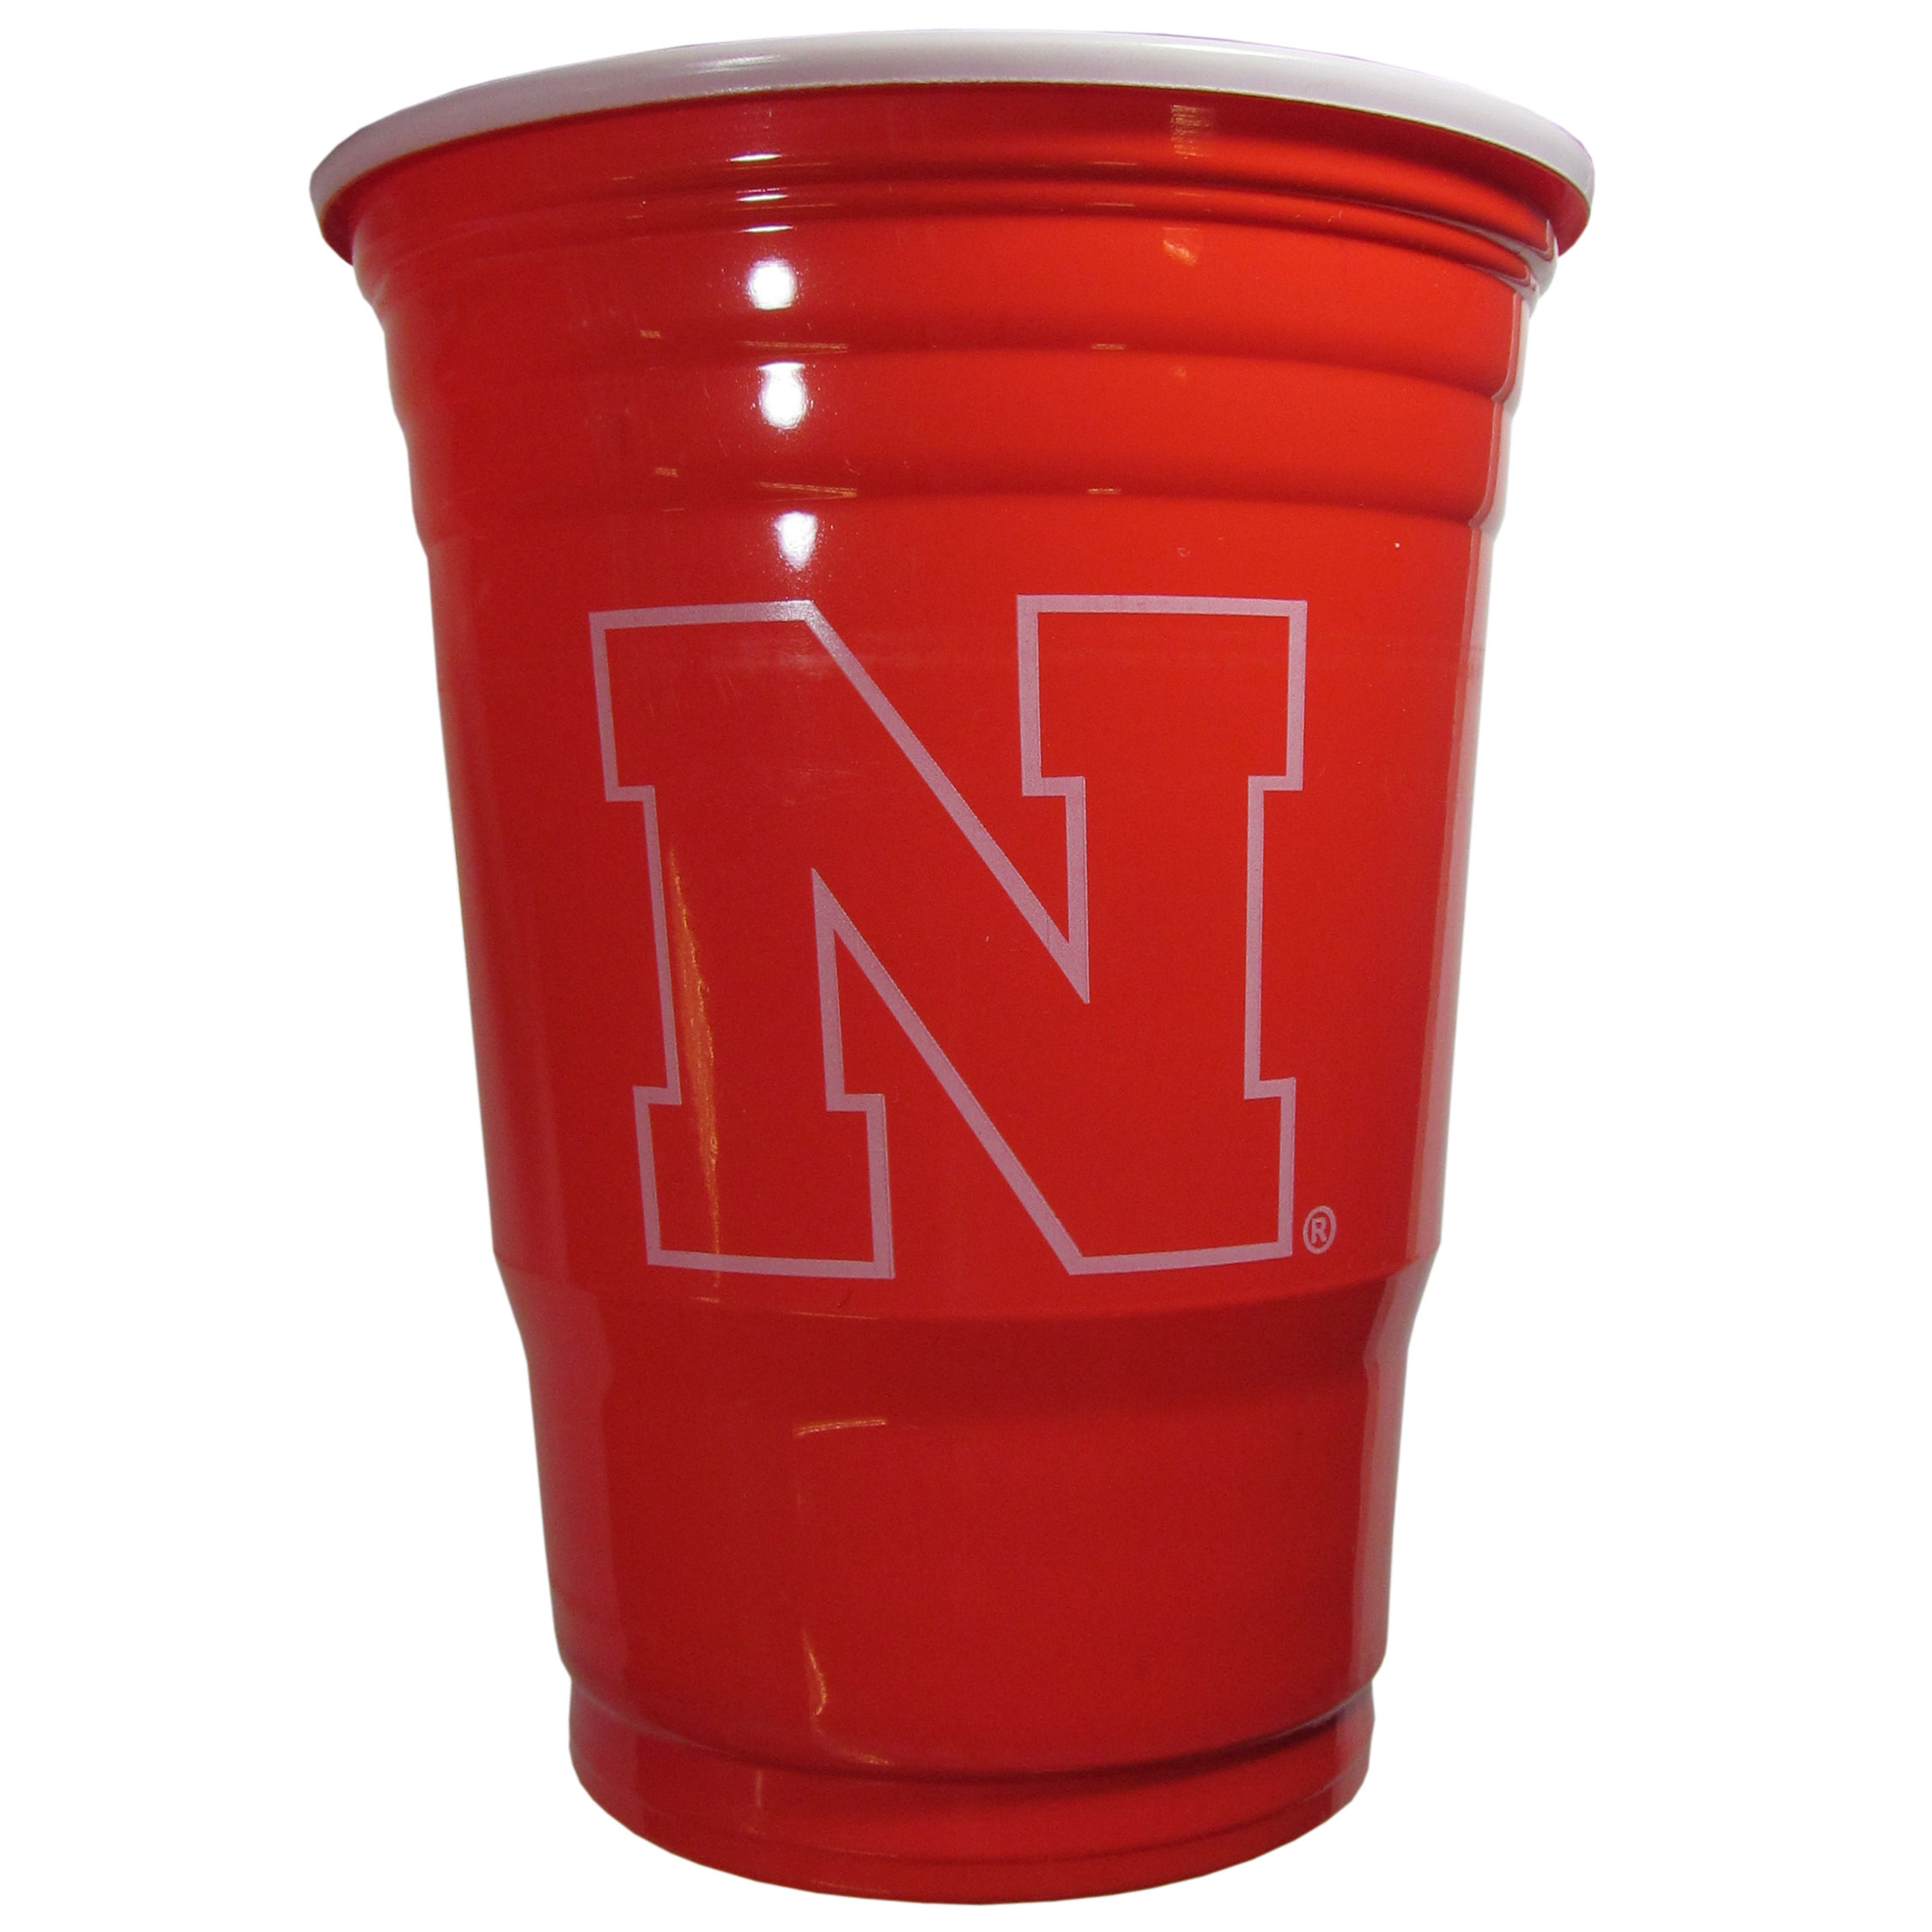 Nebraska Cornhuskers Plastic Game Day Cups - Our 18 ounce game day cups are what every tailgating or backyard events needs! The cups feature a big Nebraska Cornhuskers logo so you can show off your team pride. The popular 18 ounce size is perfect for drinks or ping pong balls! Sold in sleeves of 18 cups.